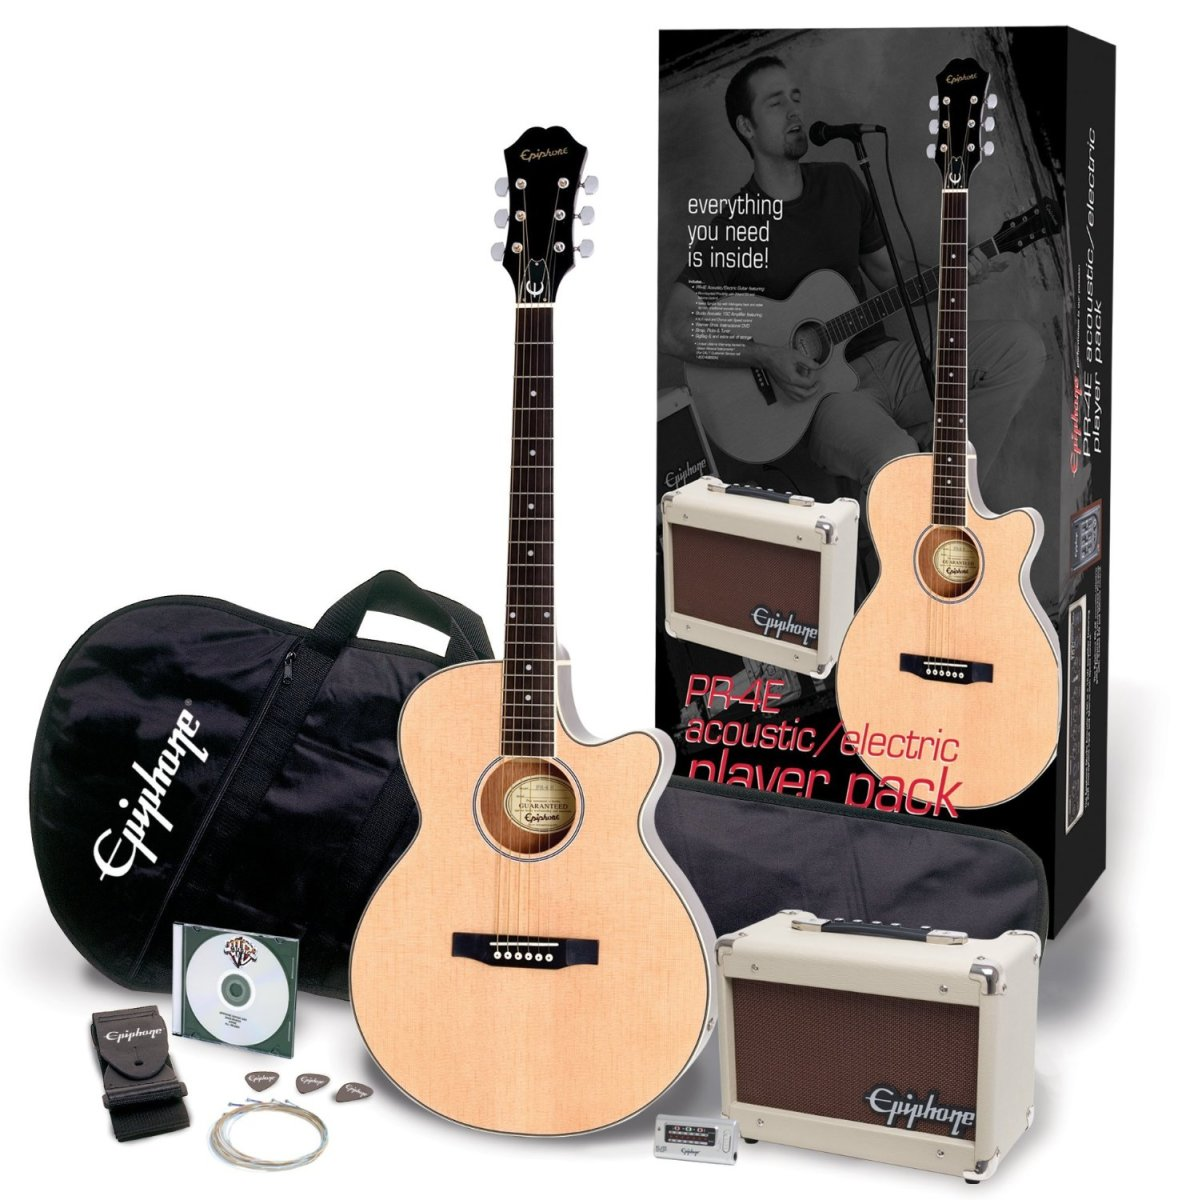 The Epiphone PR-4E Acoustic-Electric Guitar Player Pack